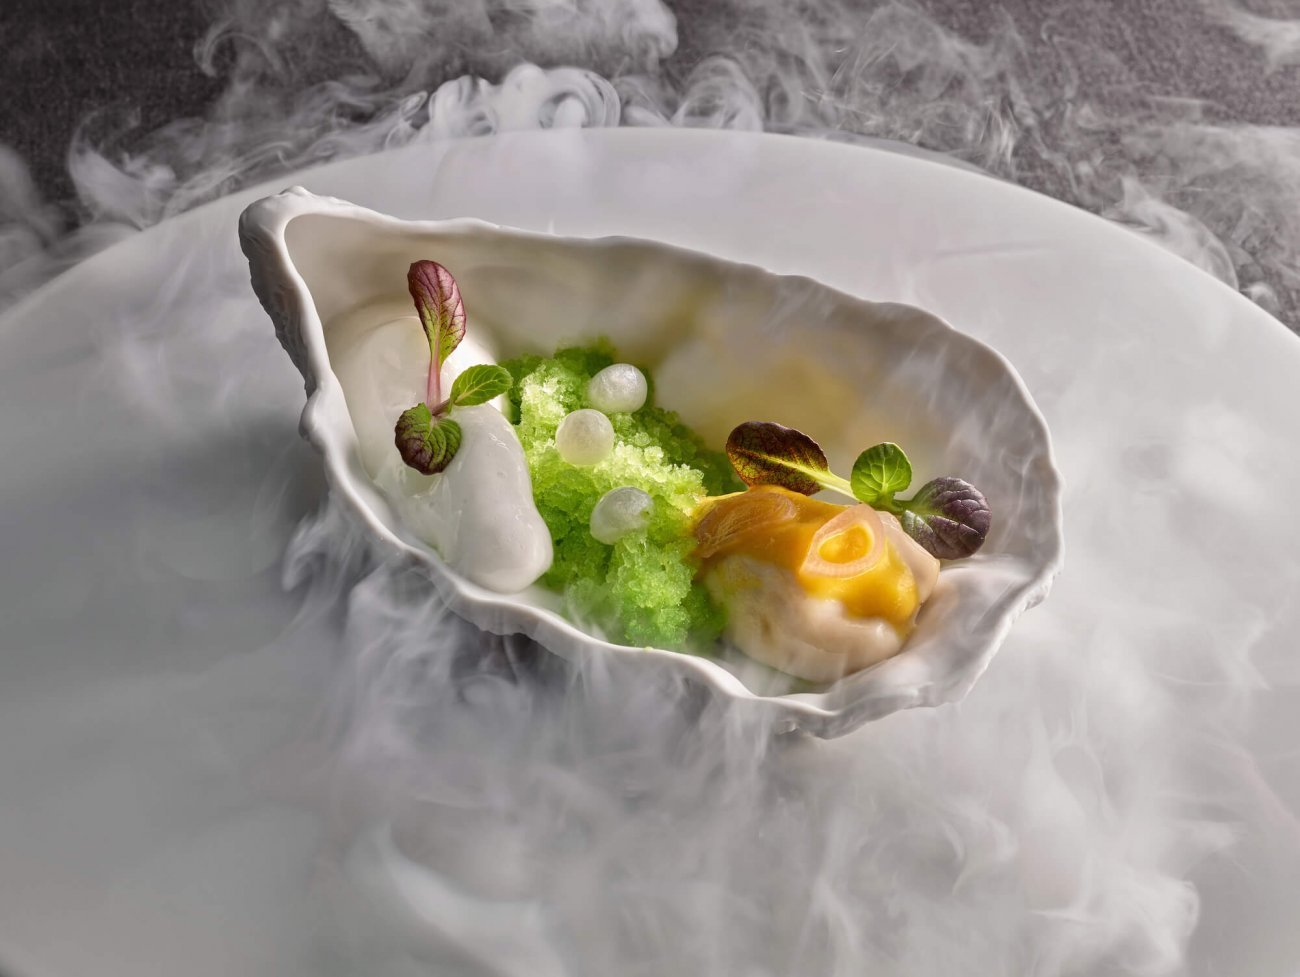 WARM PICKLED OYSTER WITH ICED CUCUMBER, K5 TXAKOLI WINE AND SPICY APPLE FOAM